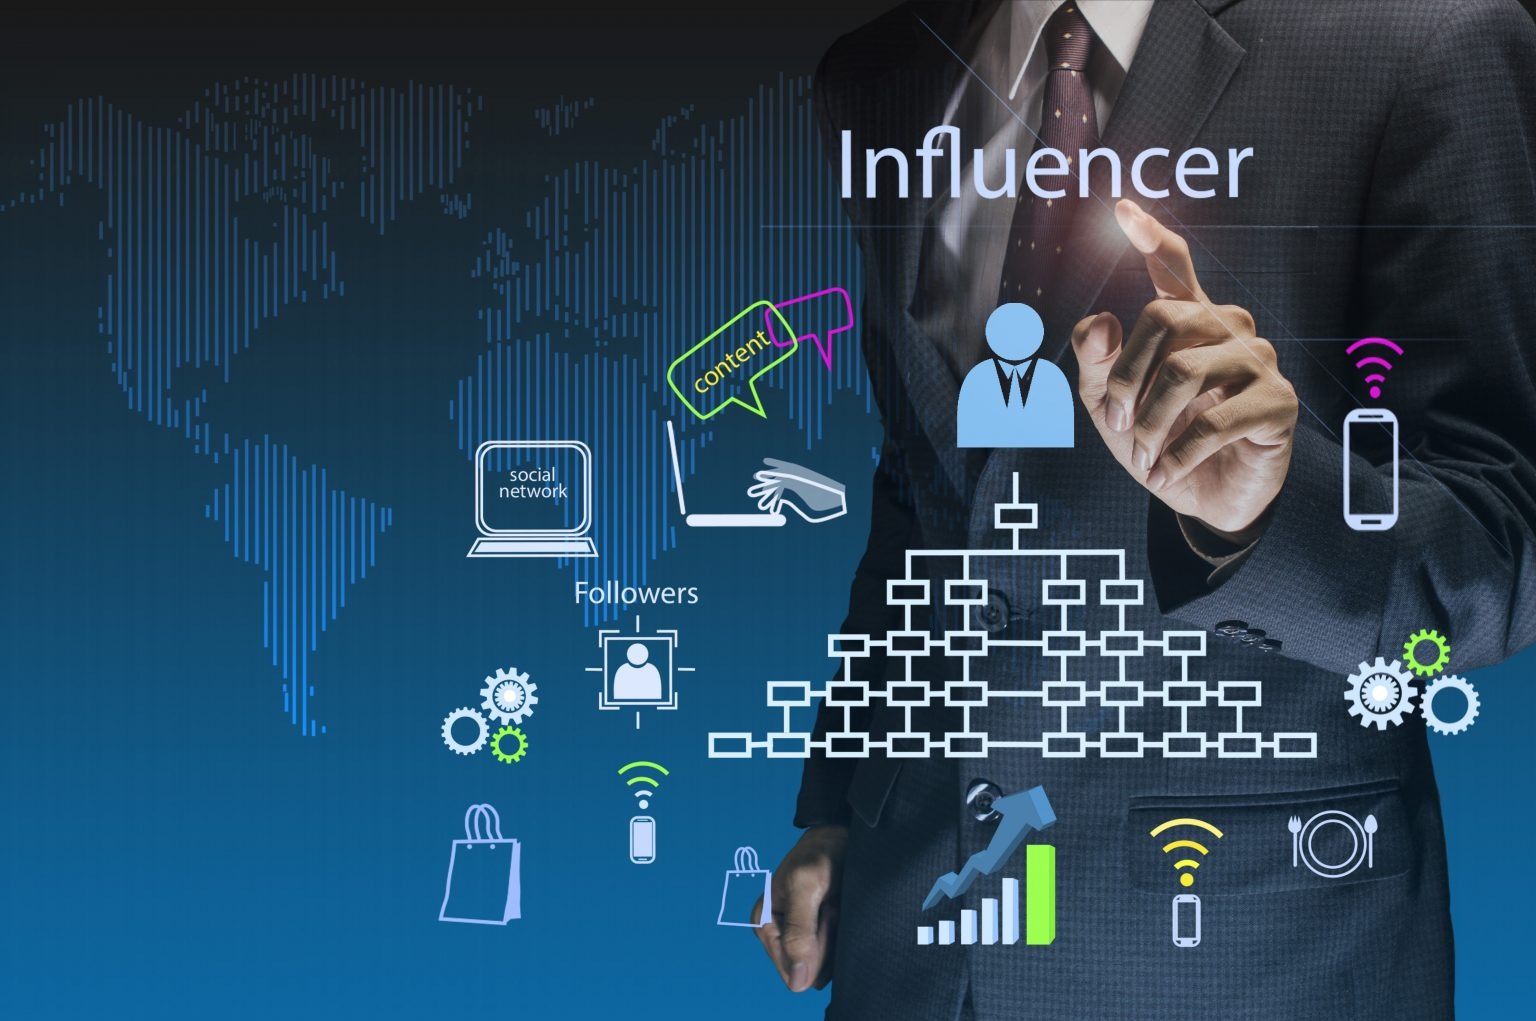 A business influencer and leader sharing and publishing online content for followers and customers